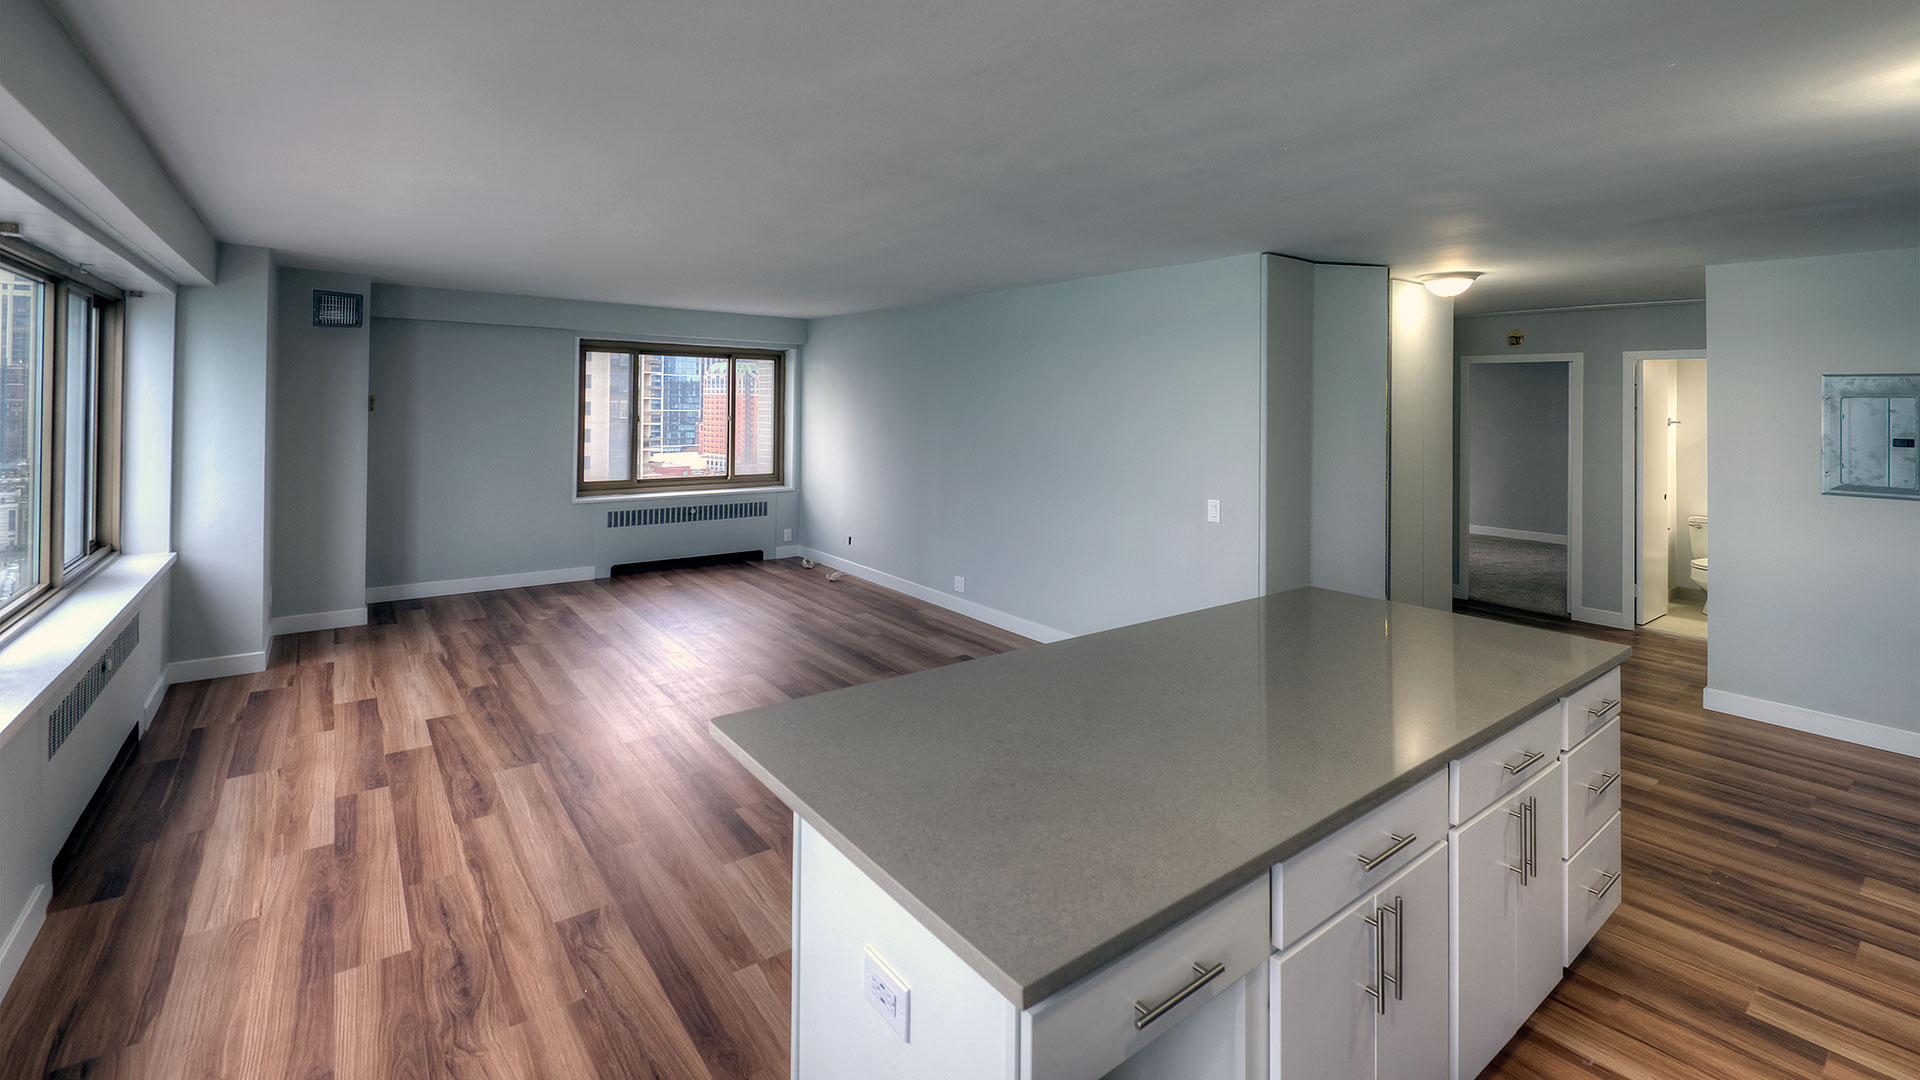 Looking out into an empty living room in a residence at 1350-1360 Lake Shore Drive. There is a kitchen island in the foreground and a short hallway off to the right.